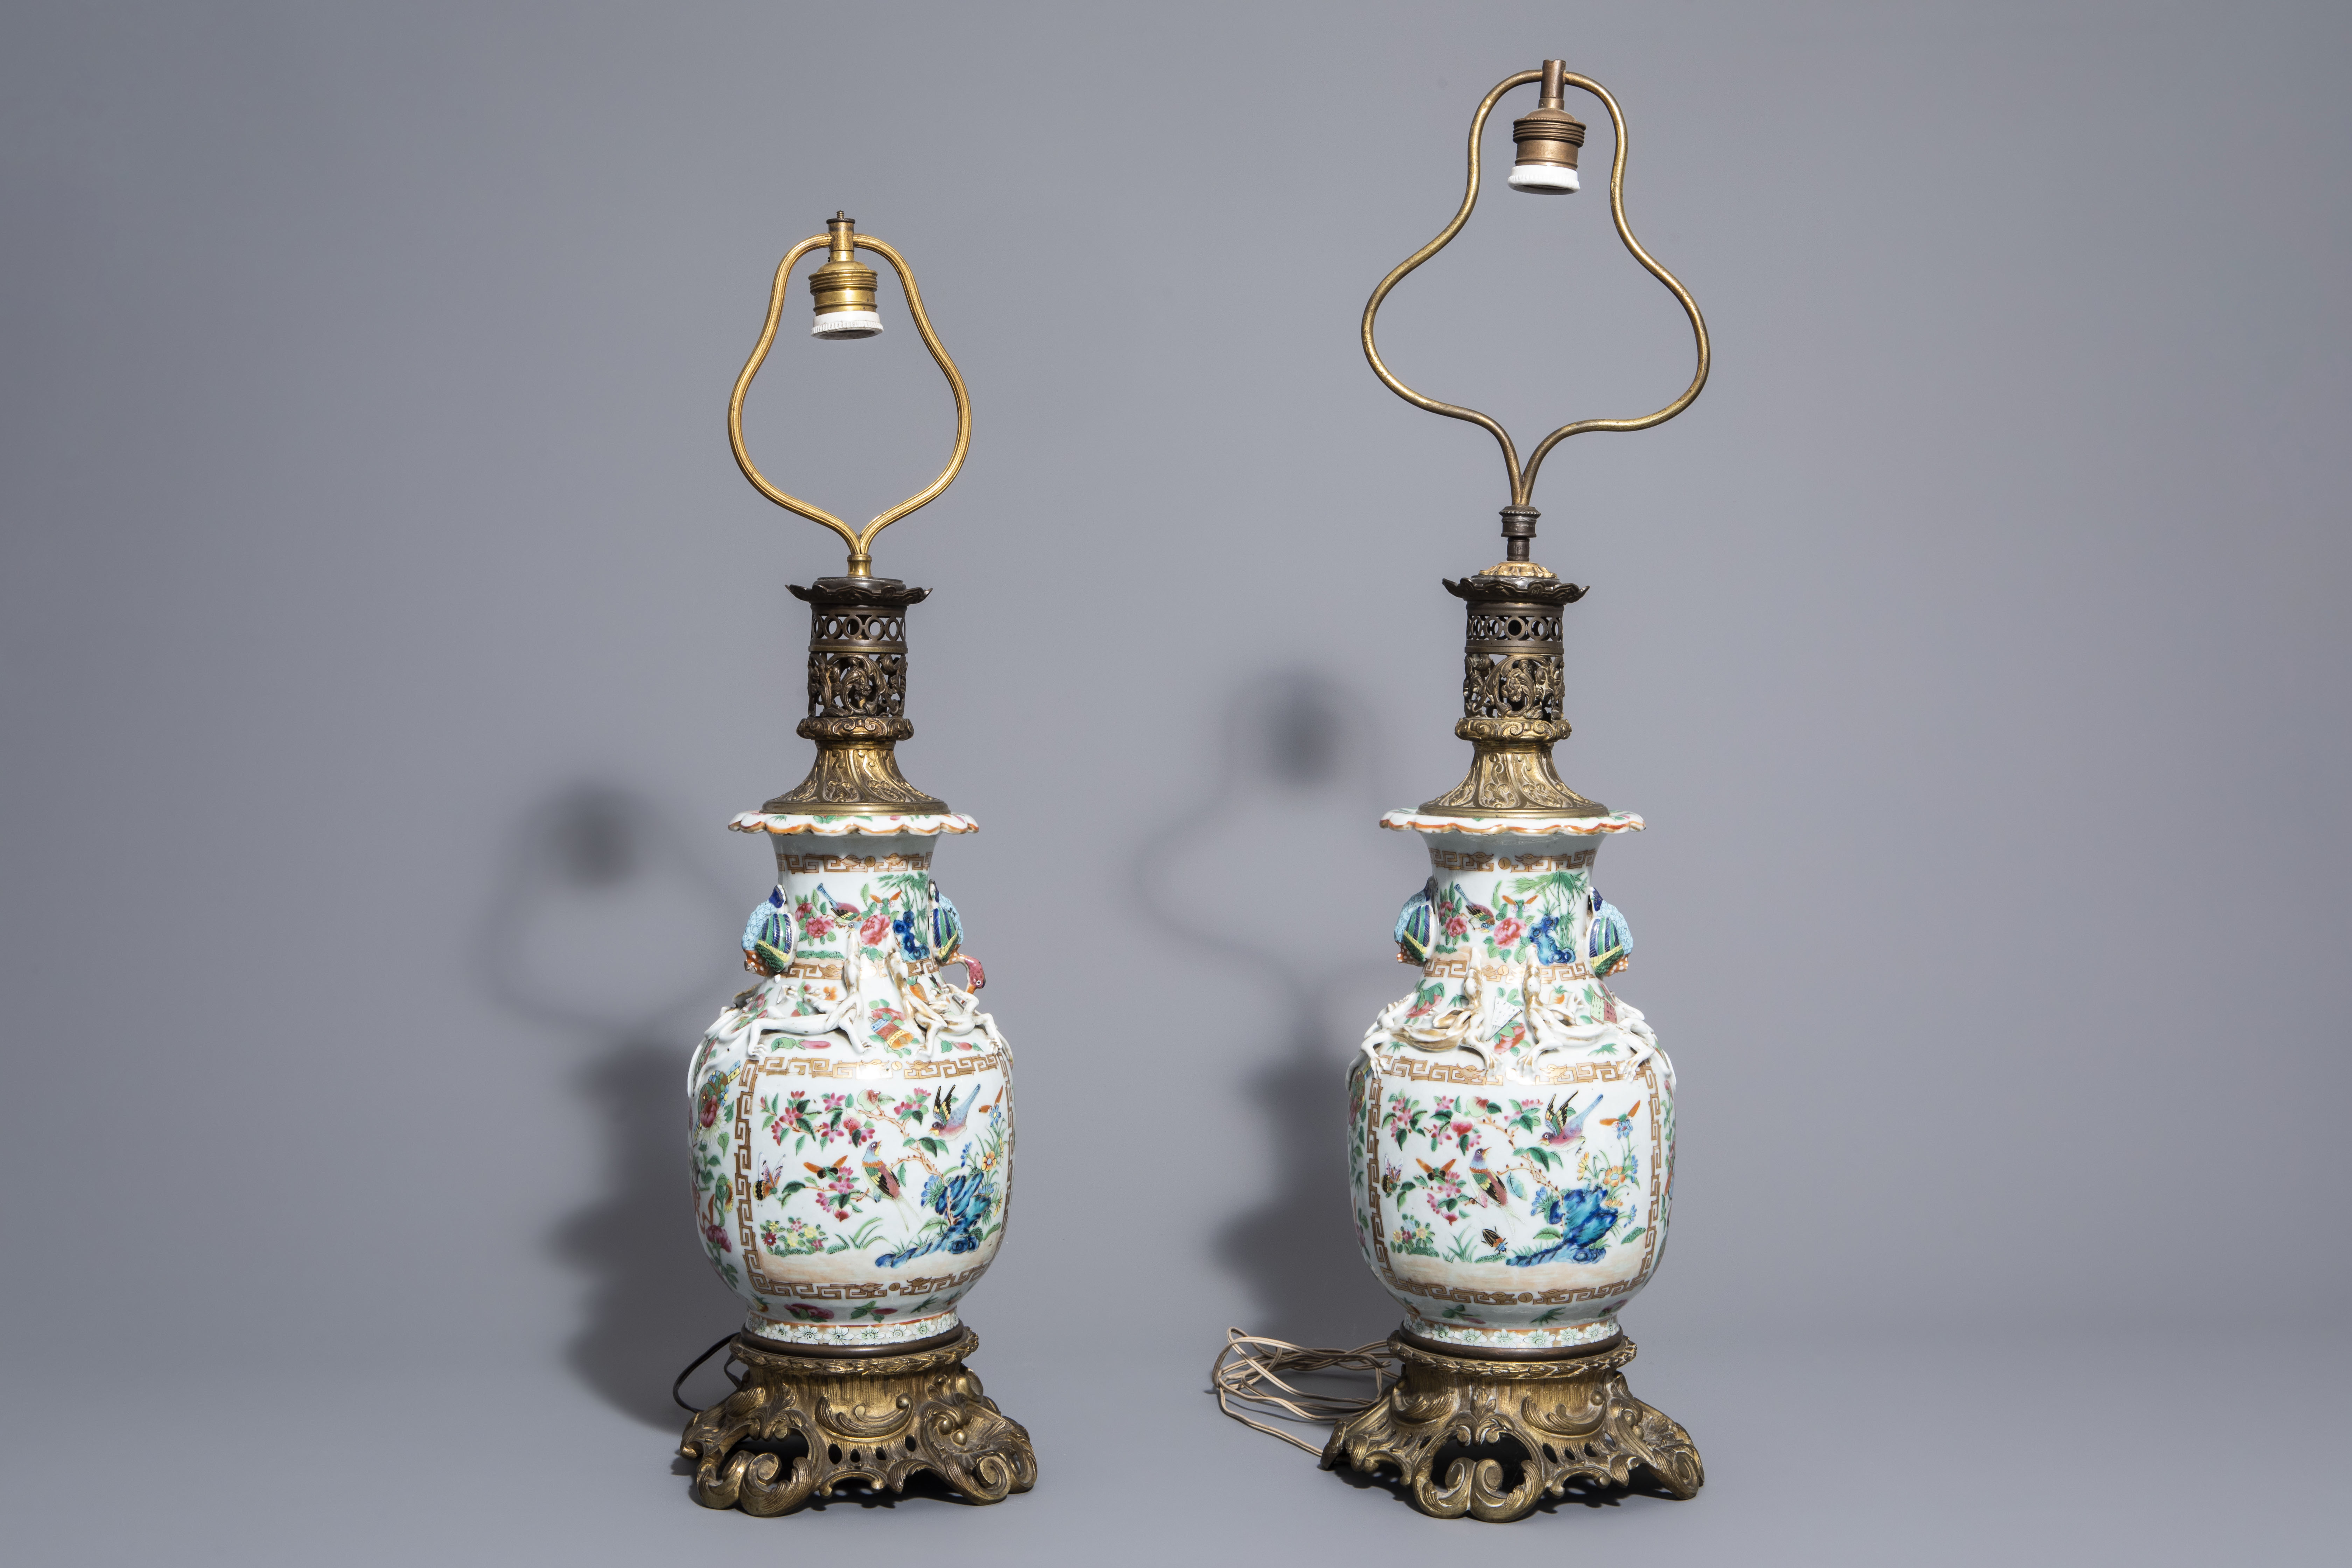 A pair of Chinese Canton famille rose vases mounted as lamps and a famille verte jar, 19th C. - Image 4 of 13